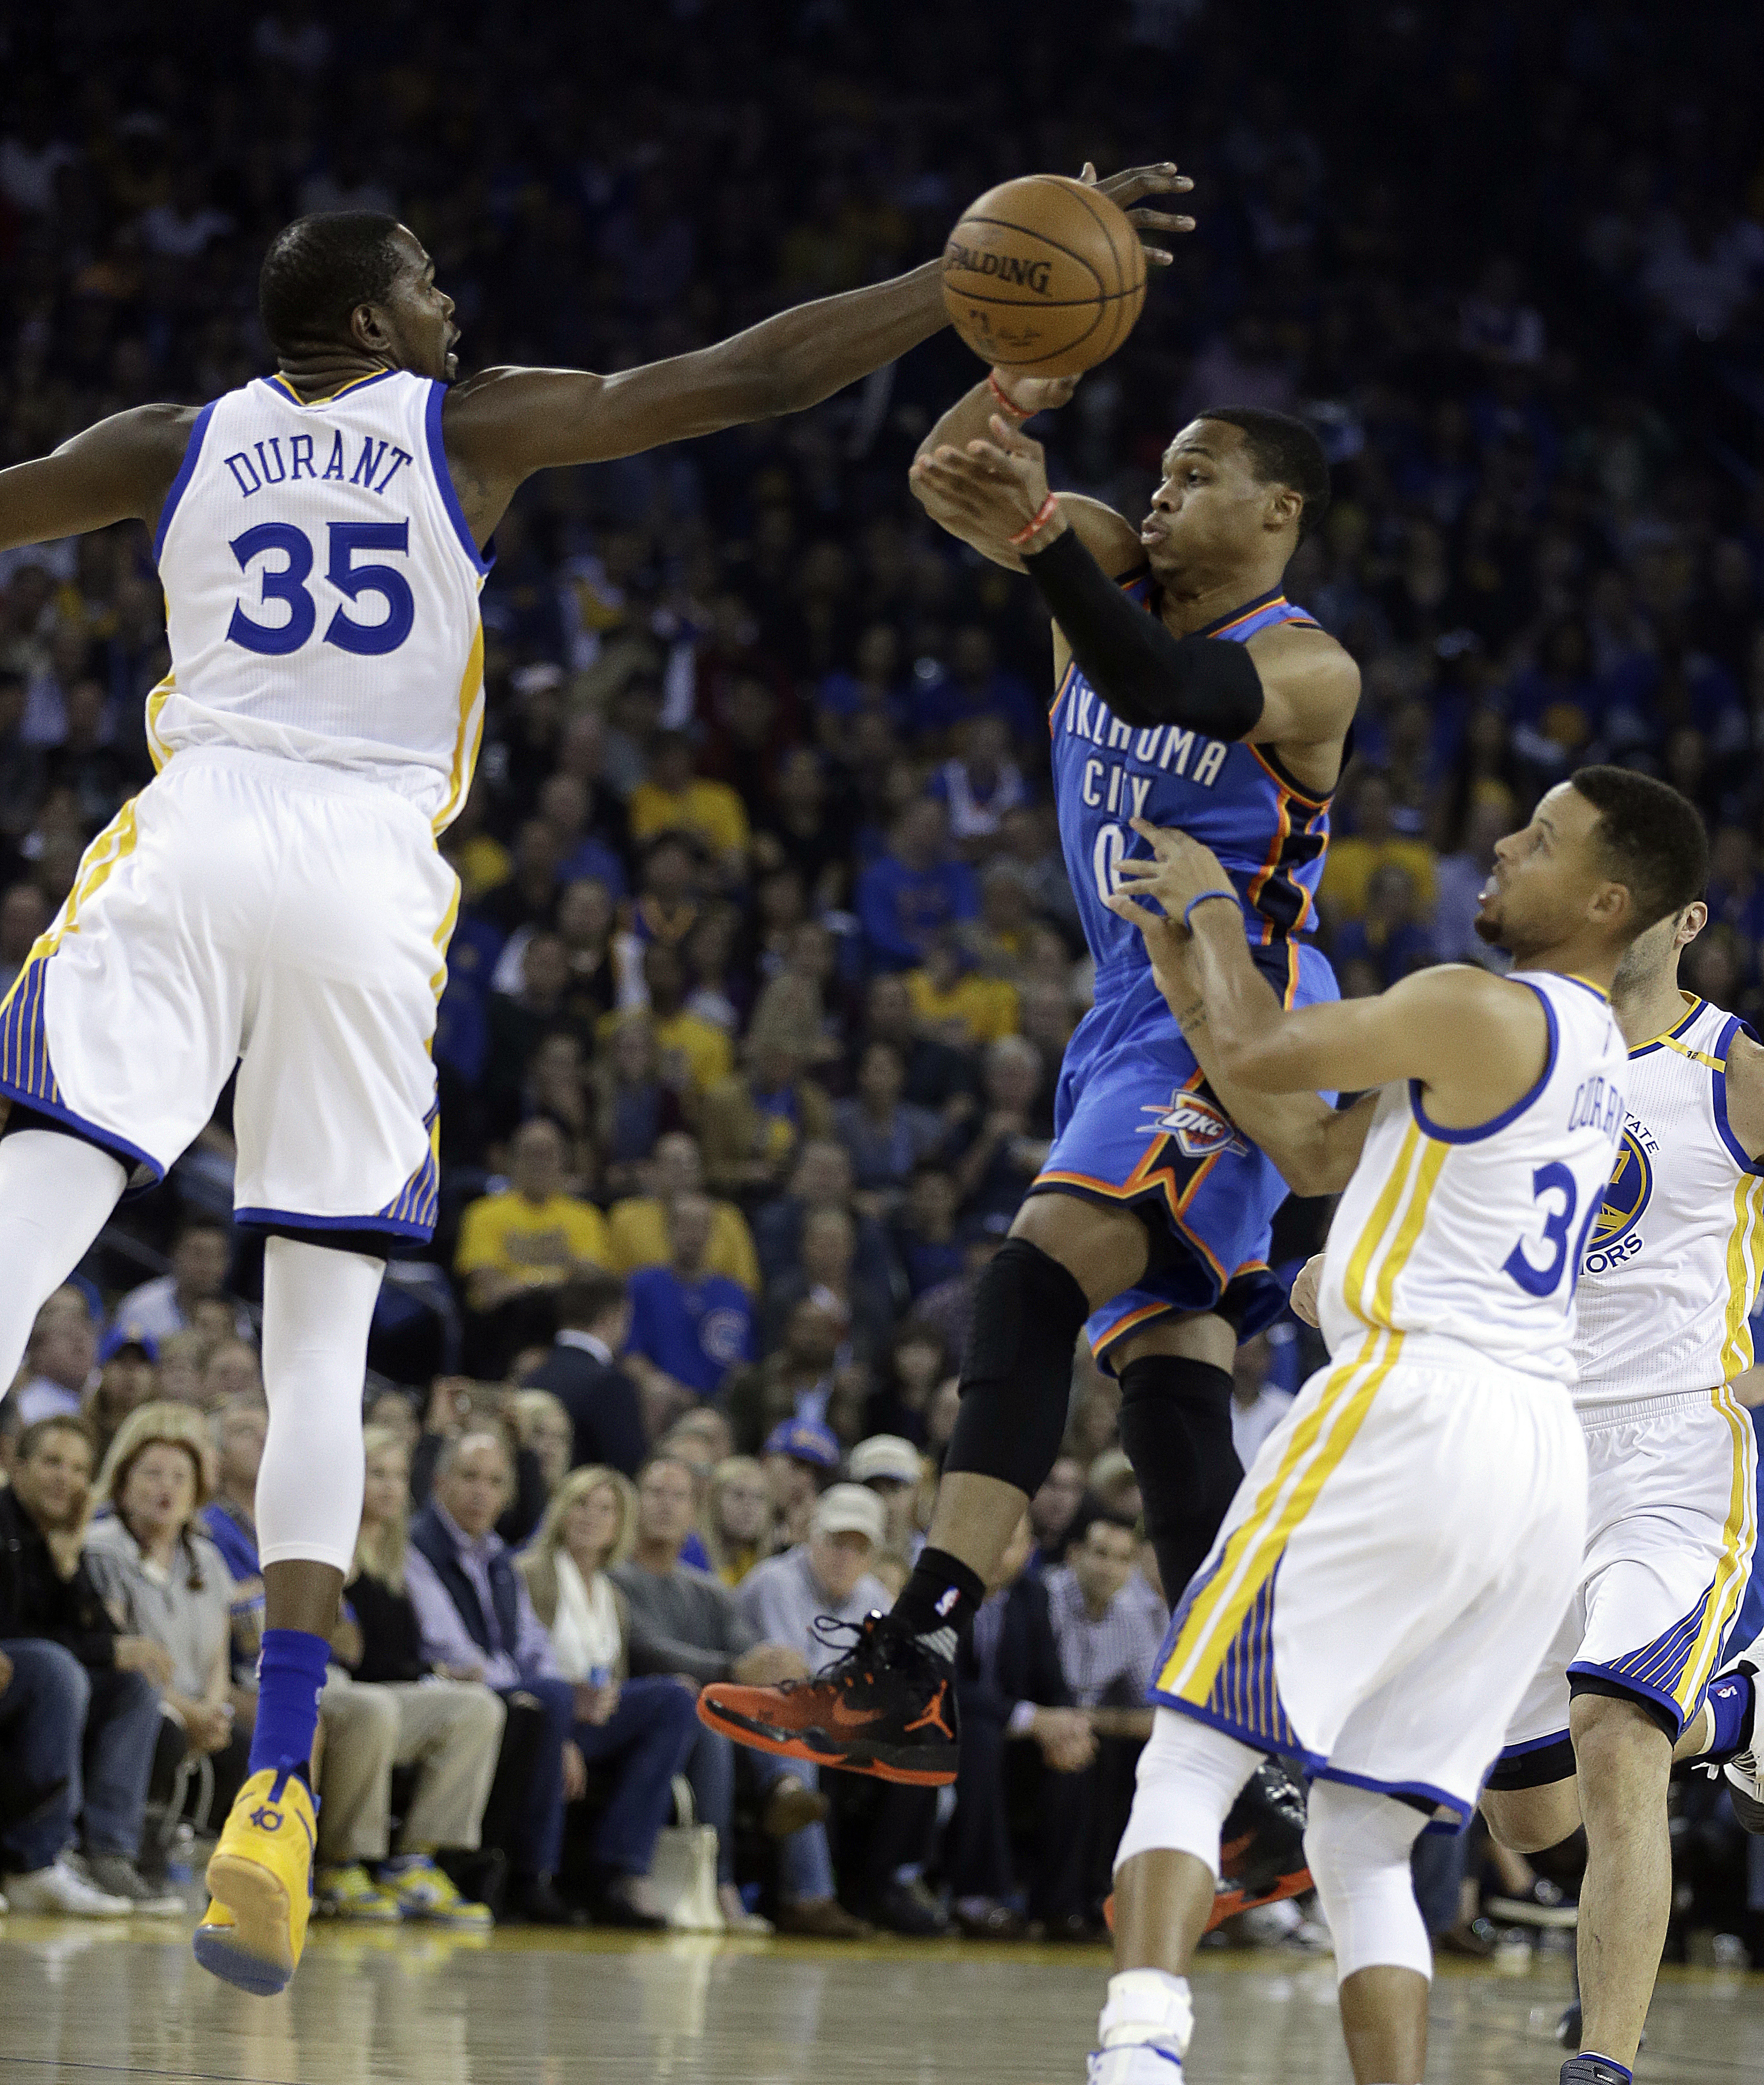 Oklahoma City Thunder guard Russell Westbrook, right, passes away from Golden State Warriors' Kevin Durant (35) during the first half of an NBA basketball game Thursday, Nov. 3, 2016, in Oakland, Calif.